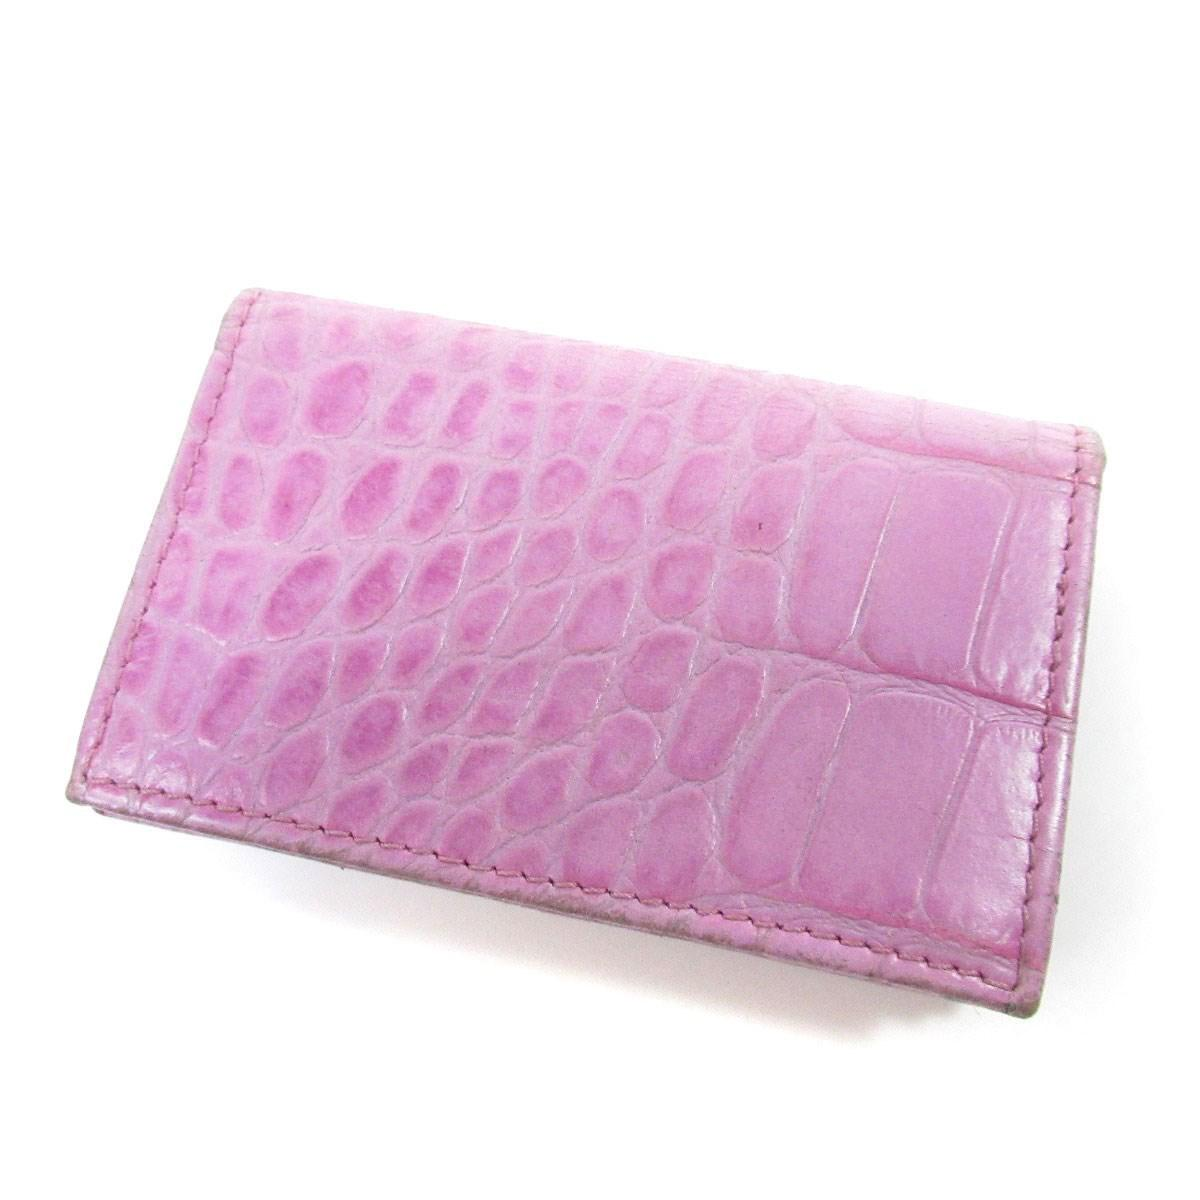 Lyst - Jimmy Choo Leather Card Case Business Card Holder in Purple